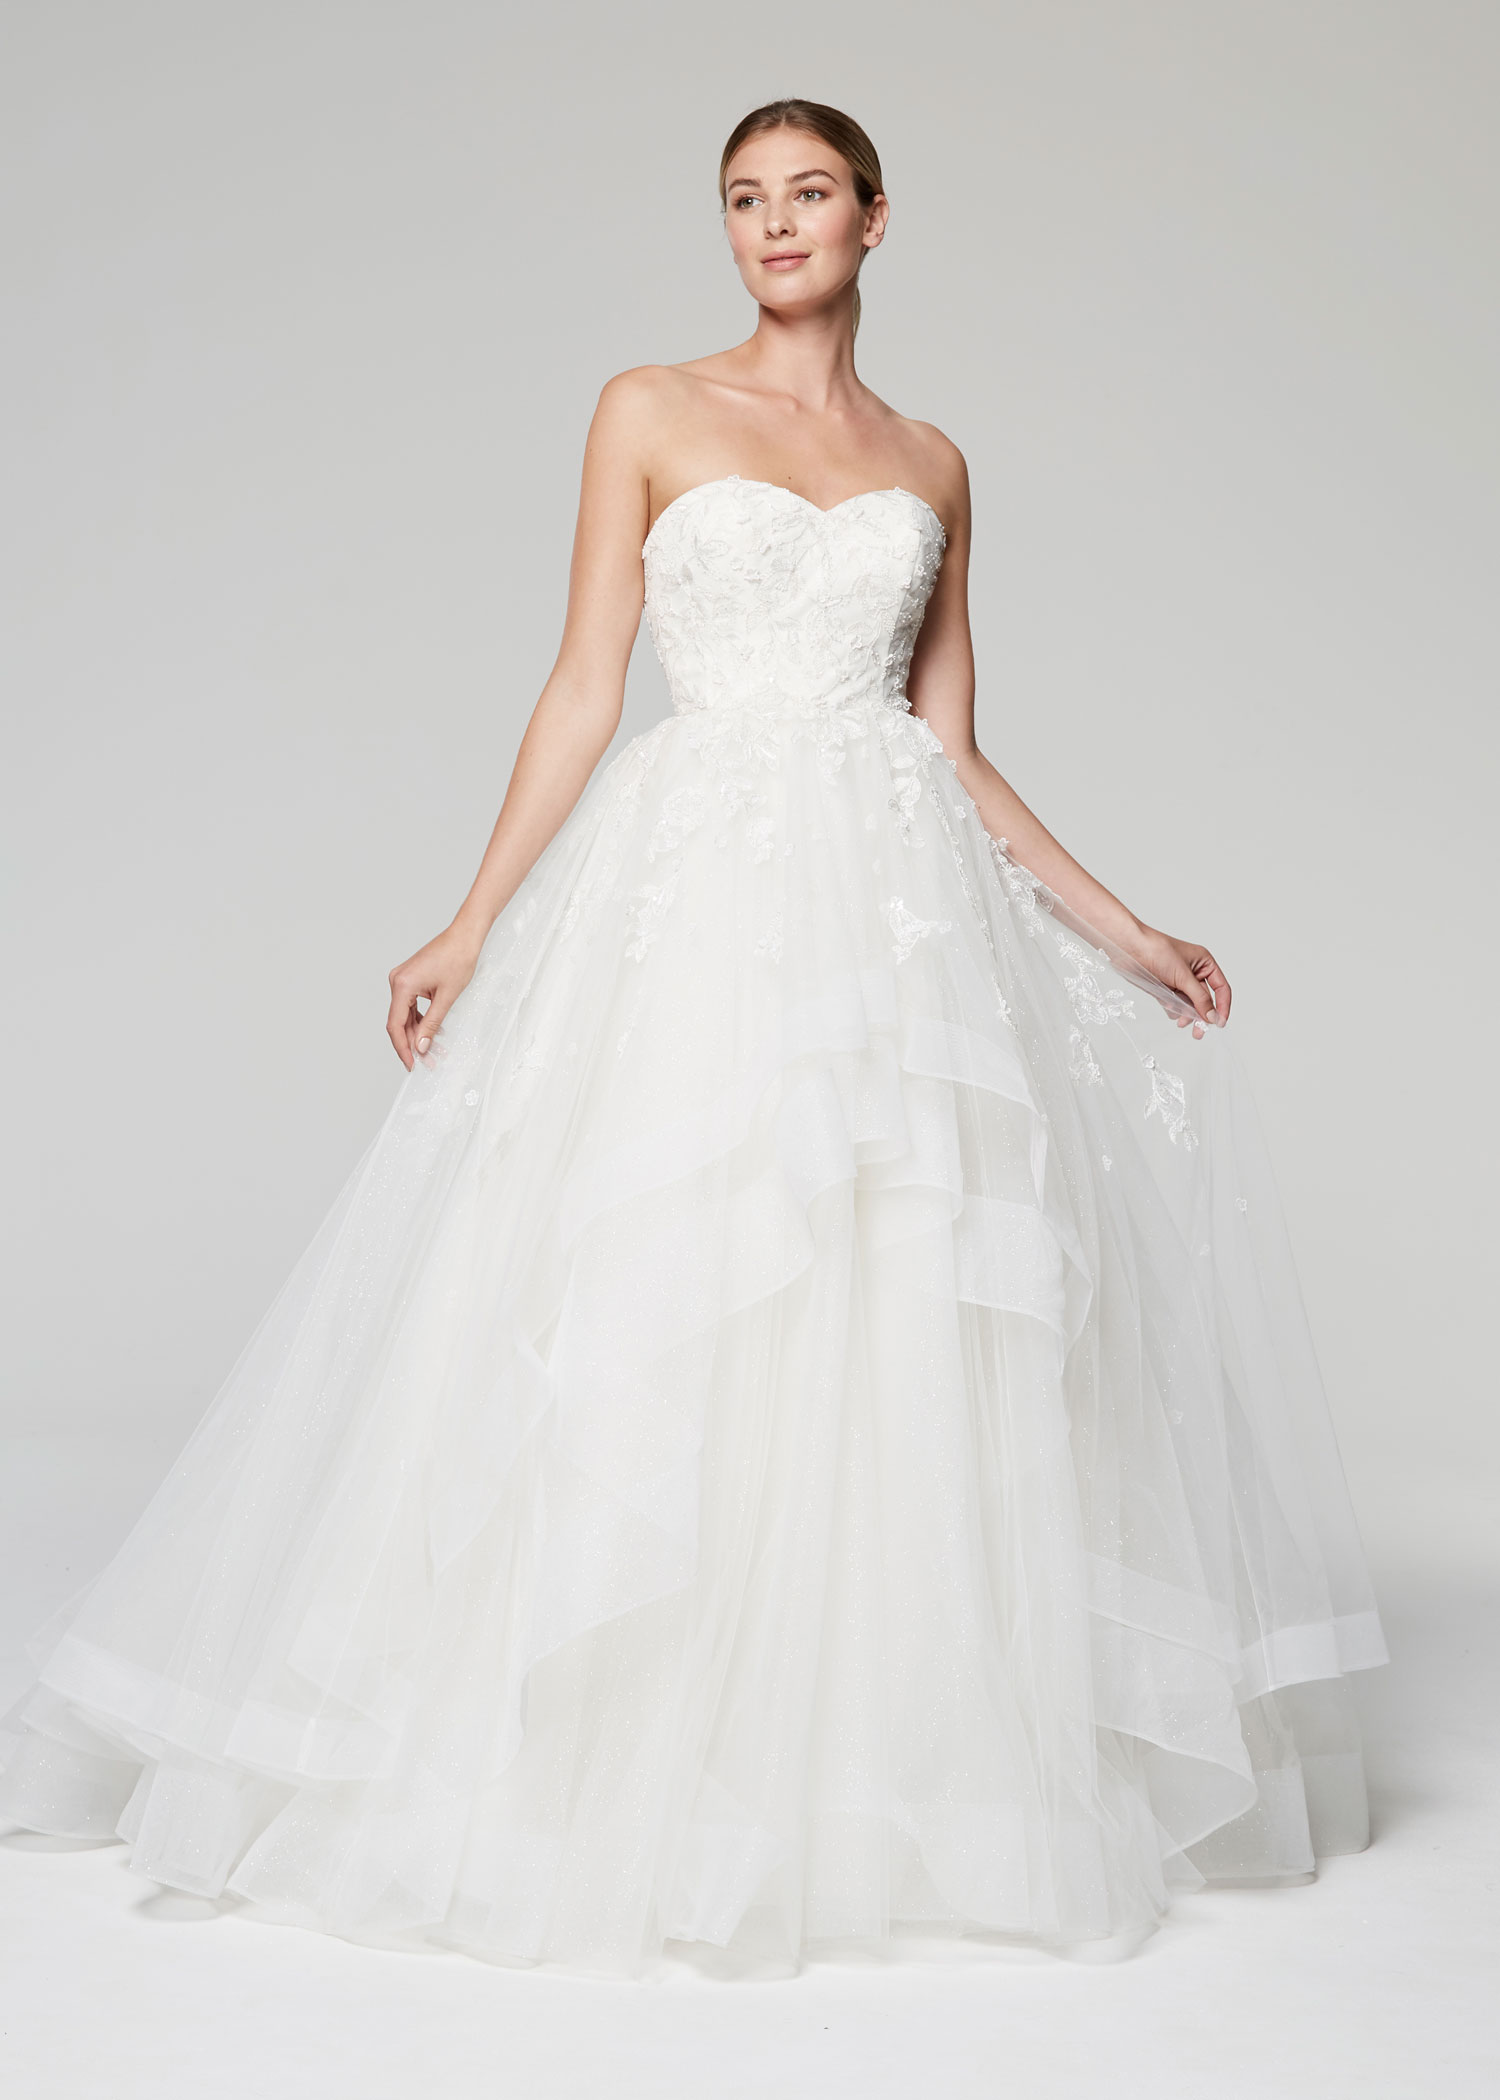 b37ace299414 Anne Barge Blue Willow Bride Fall 2018 collection strapless sweetheart  tulle gown with beading